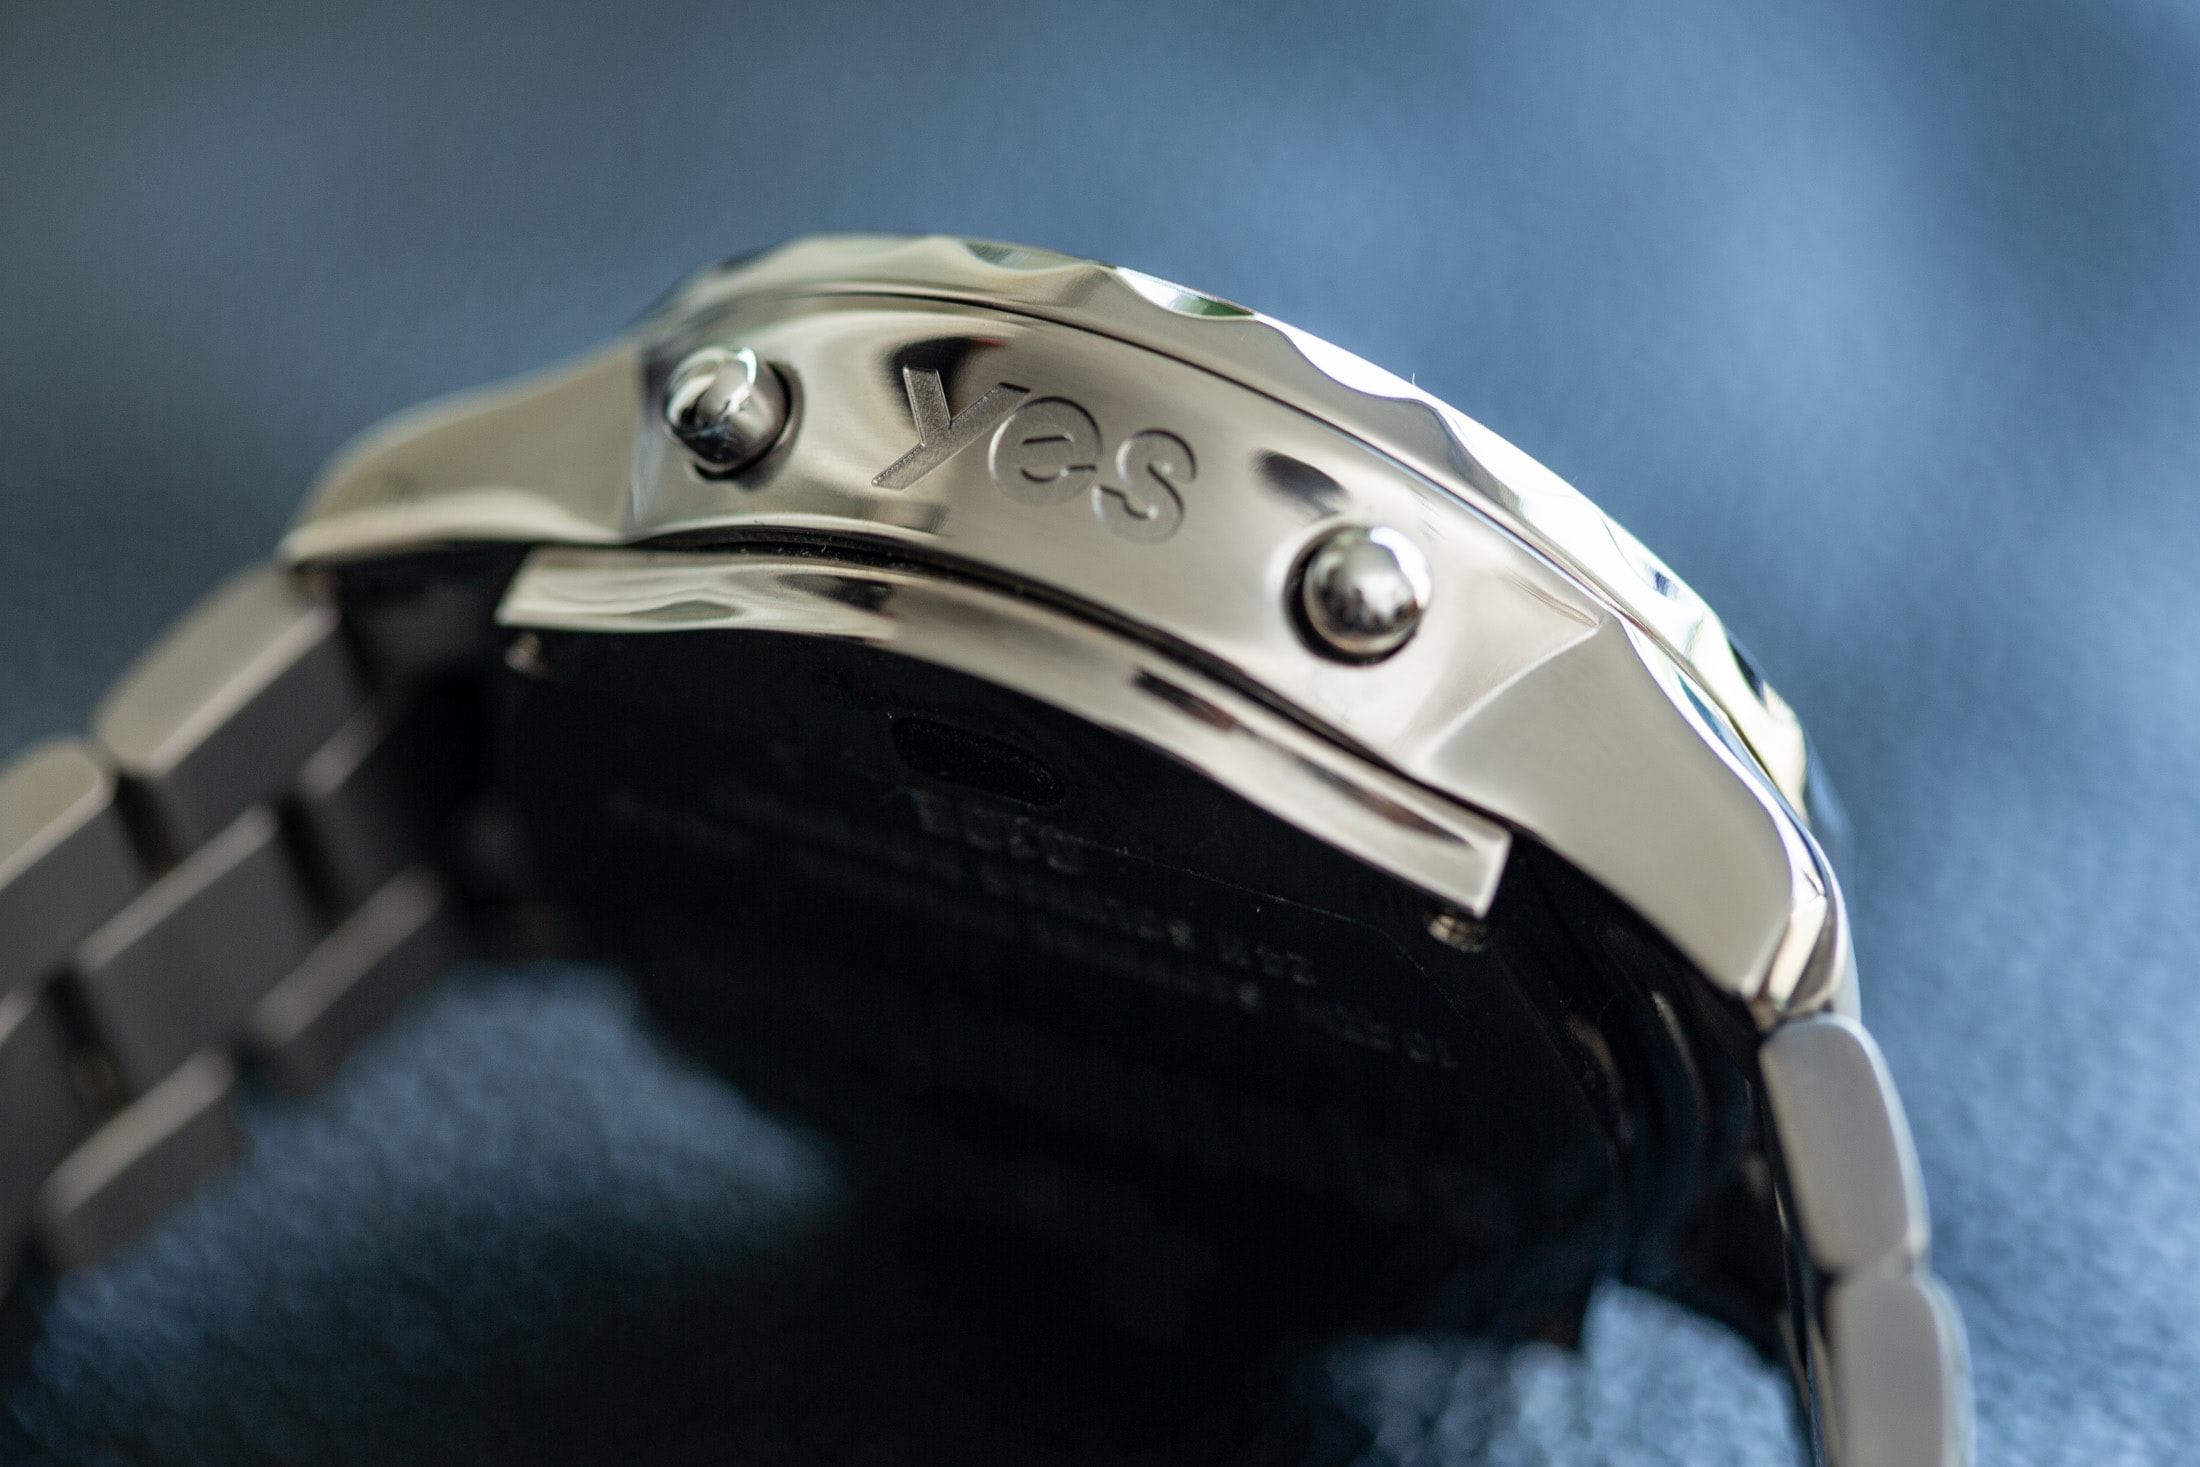 Hands-On: The Yes Equilibrium Yes Equilibrium 4